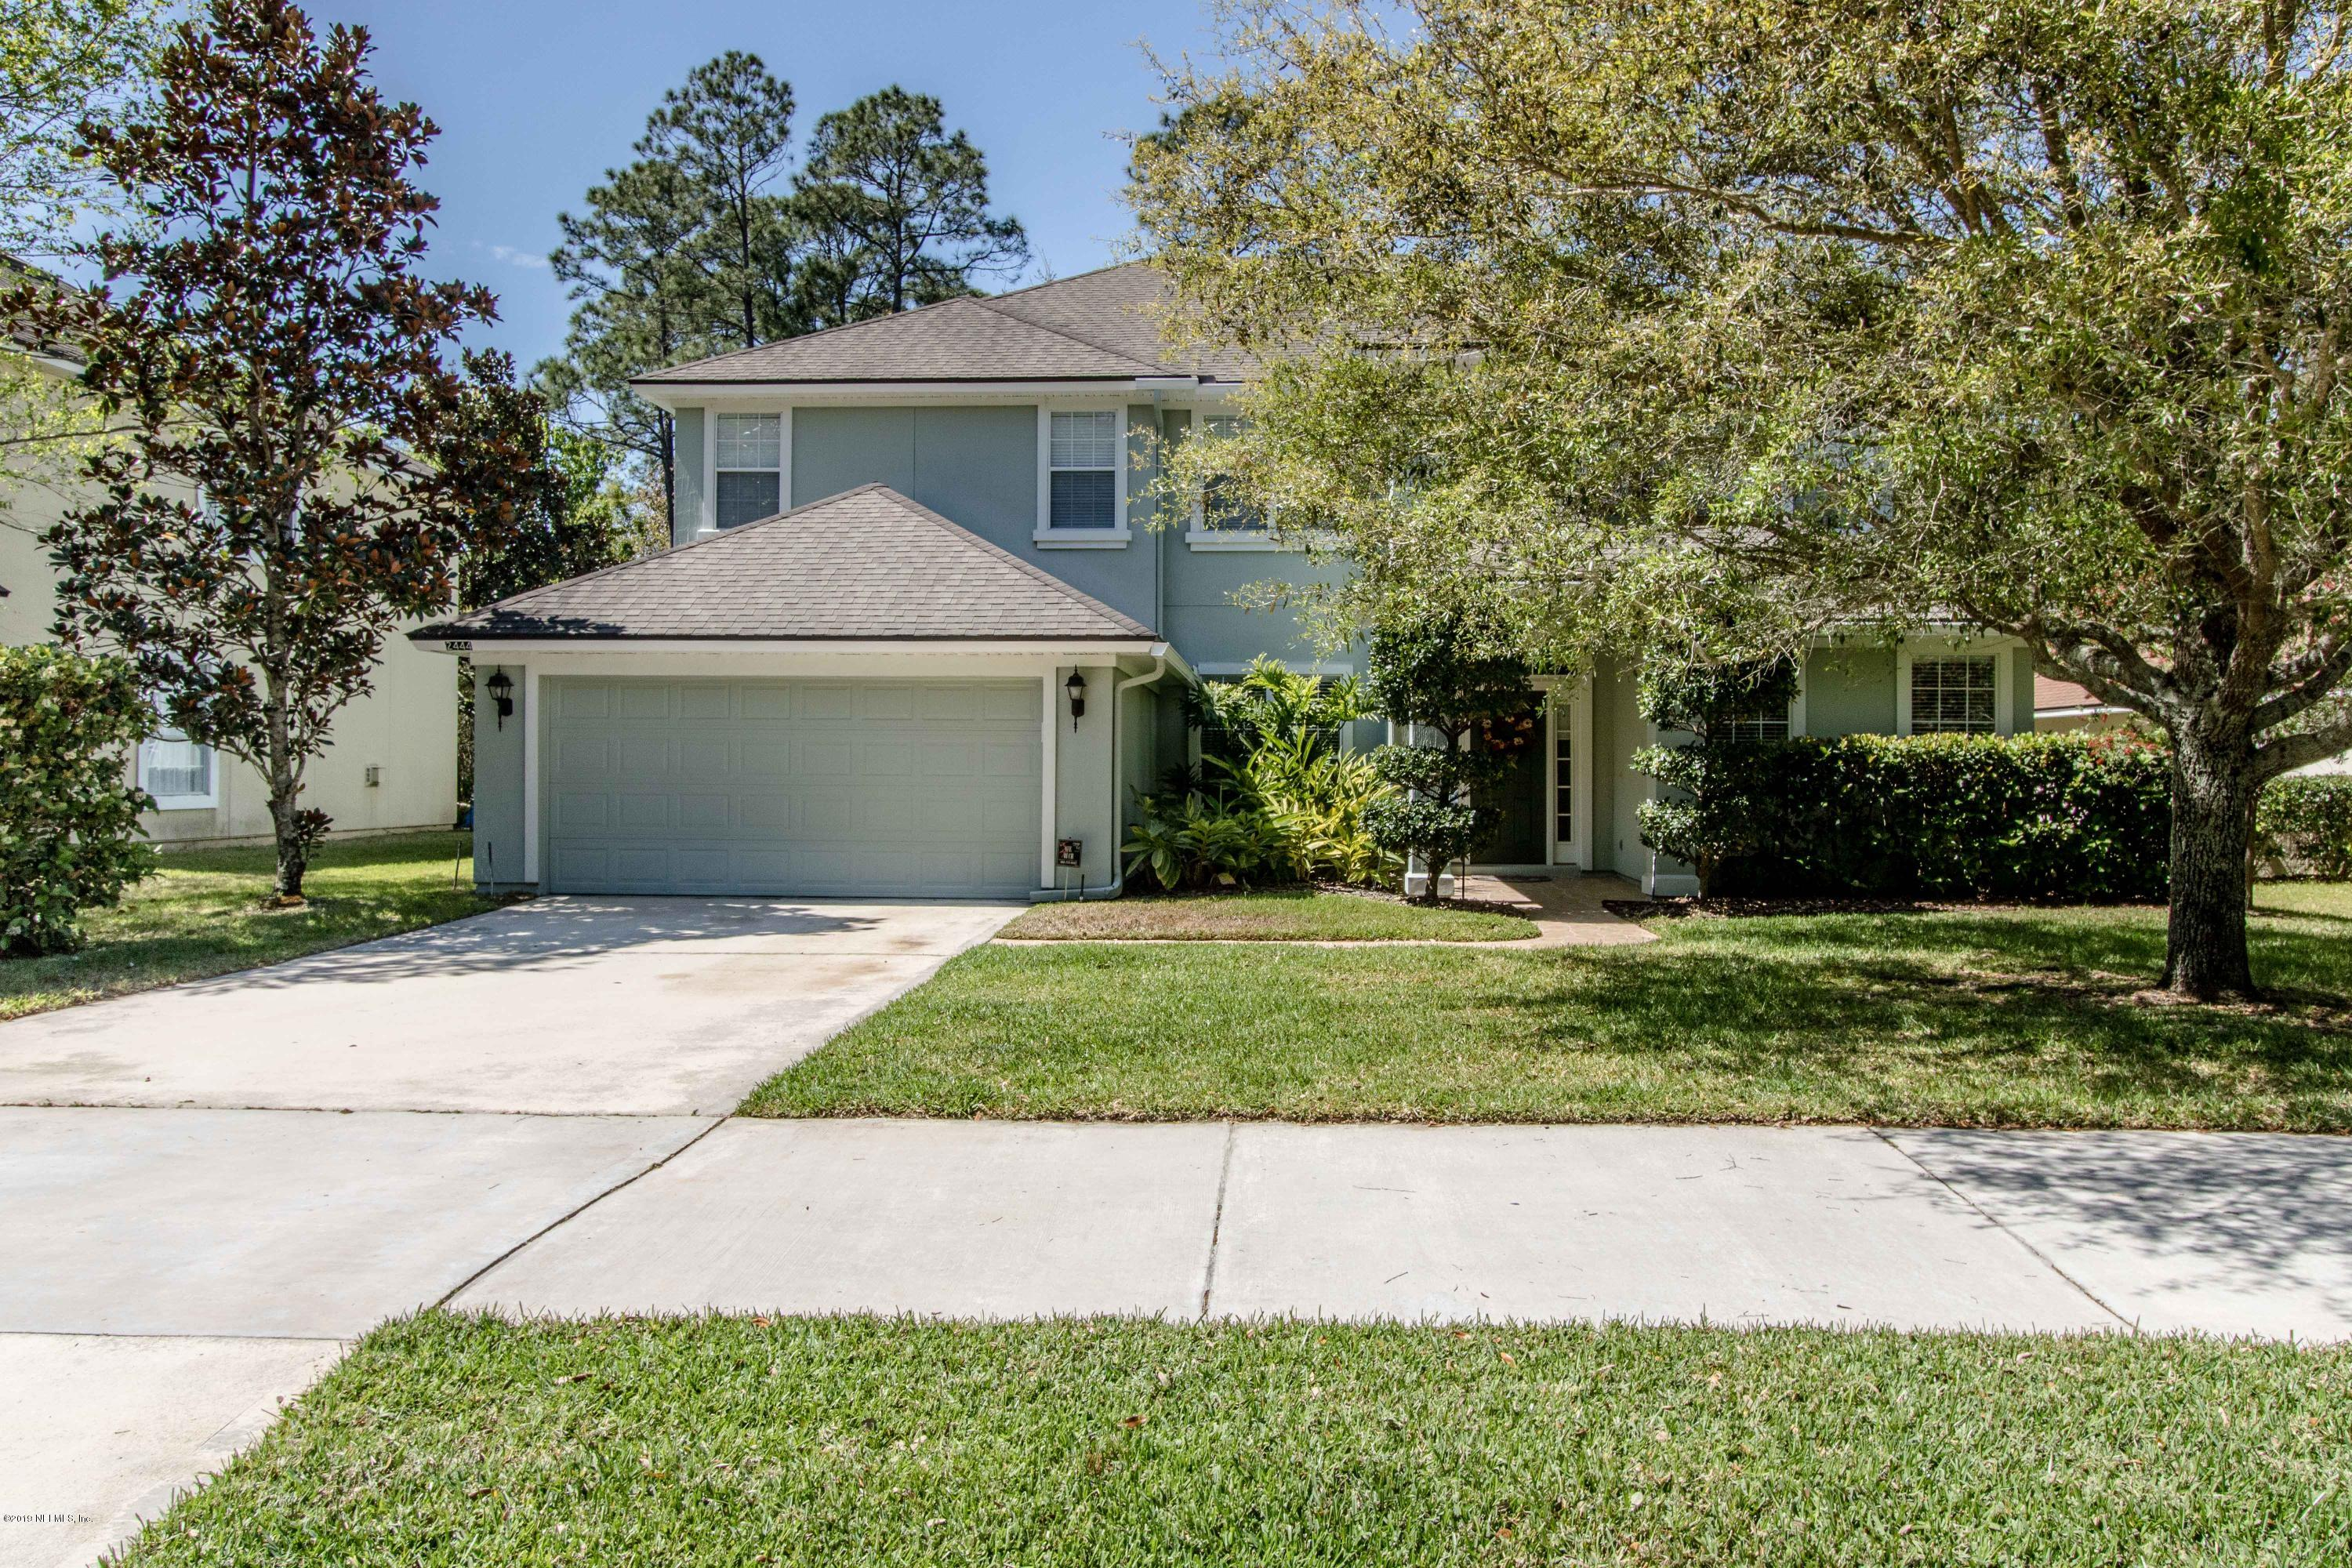 2444 COUNTRY SIDE, FLEMING ISLAND, FLORIDA 32003, 5 Bedrooms Bedrooms, ,3 BathroomsBathrooms,Residential - single family,For sale,COUNTRY SIDE,985710